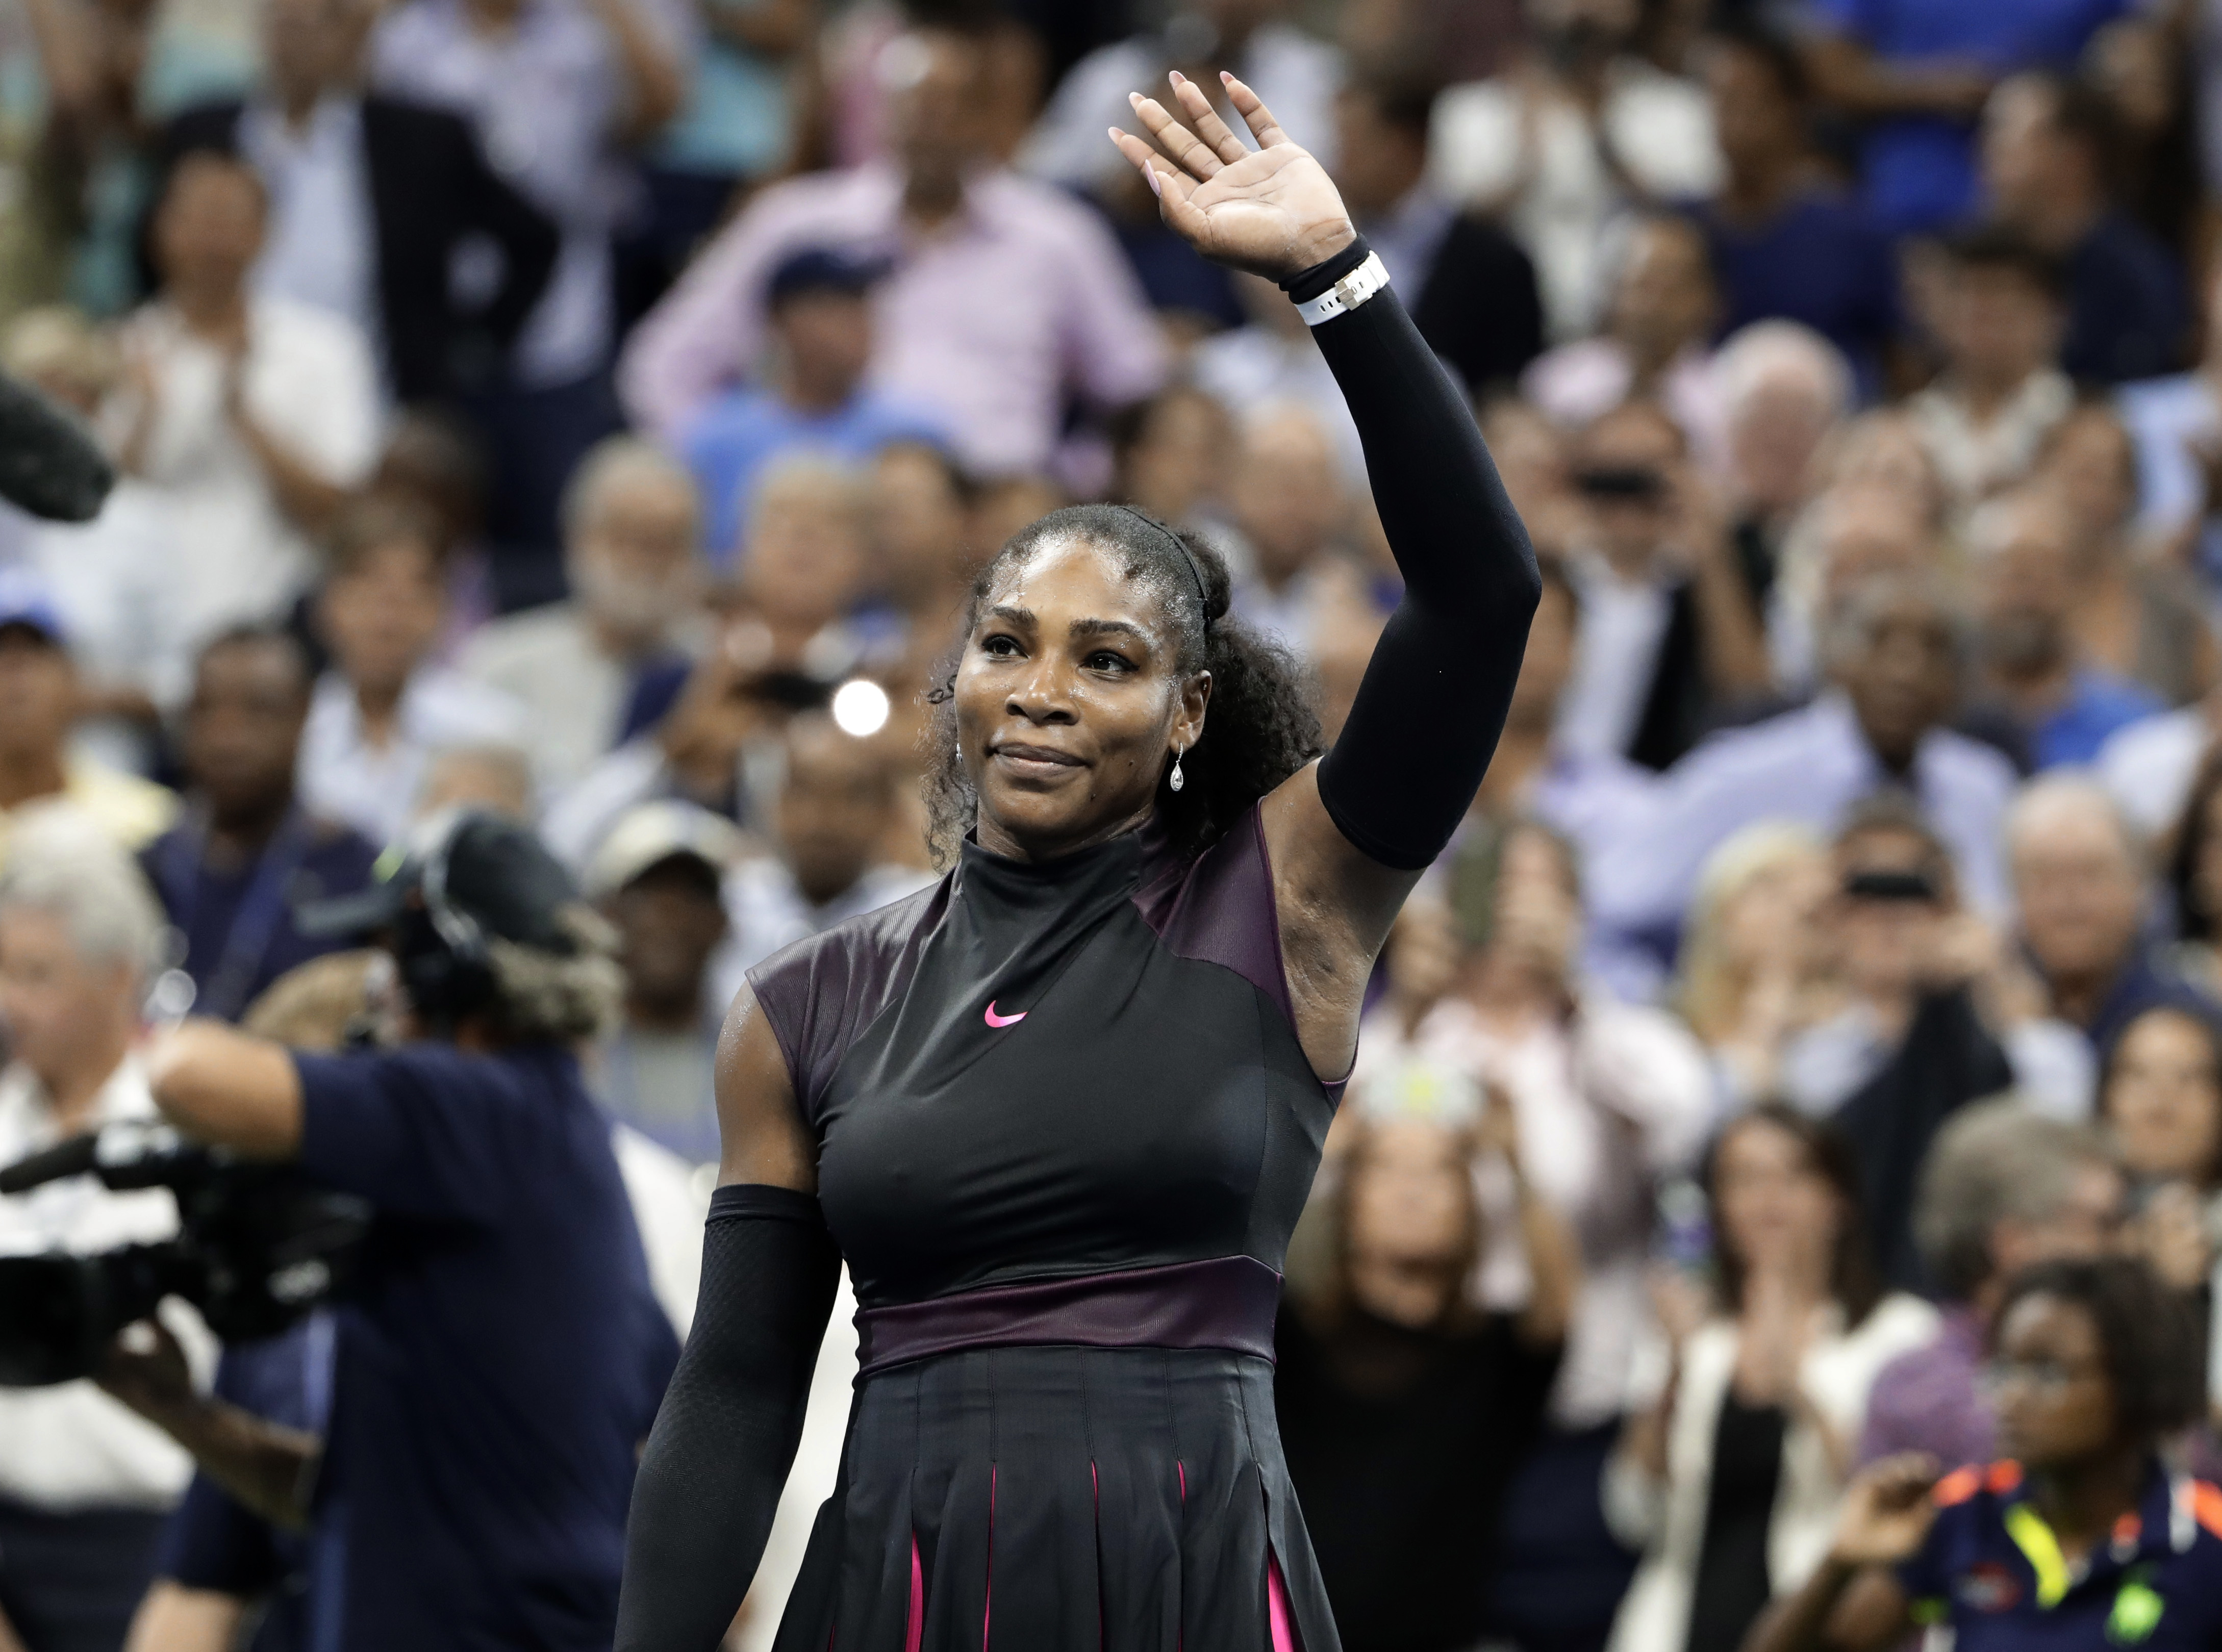 Serena Williams. of the United States, waves to the crowd after defeating Simona Halep, of Romania, 6-2, 4-6, 6-3 during the quarterfinals of the U.S. Open tennis tournament, Wednesday, Sept. 7, 2016, in New York. (AP Photo/Seth Wenig)